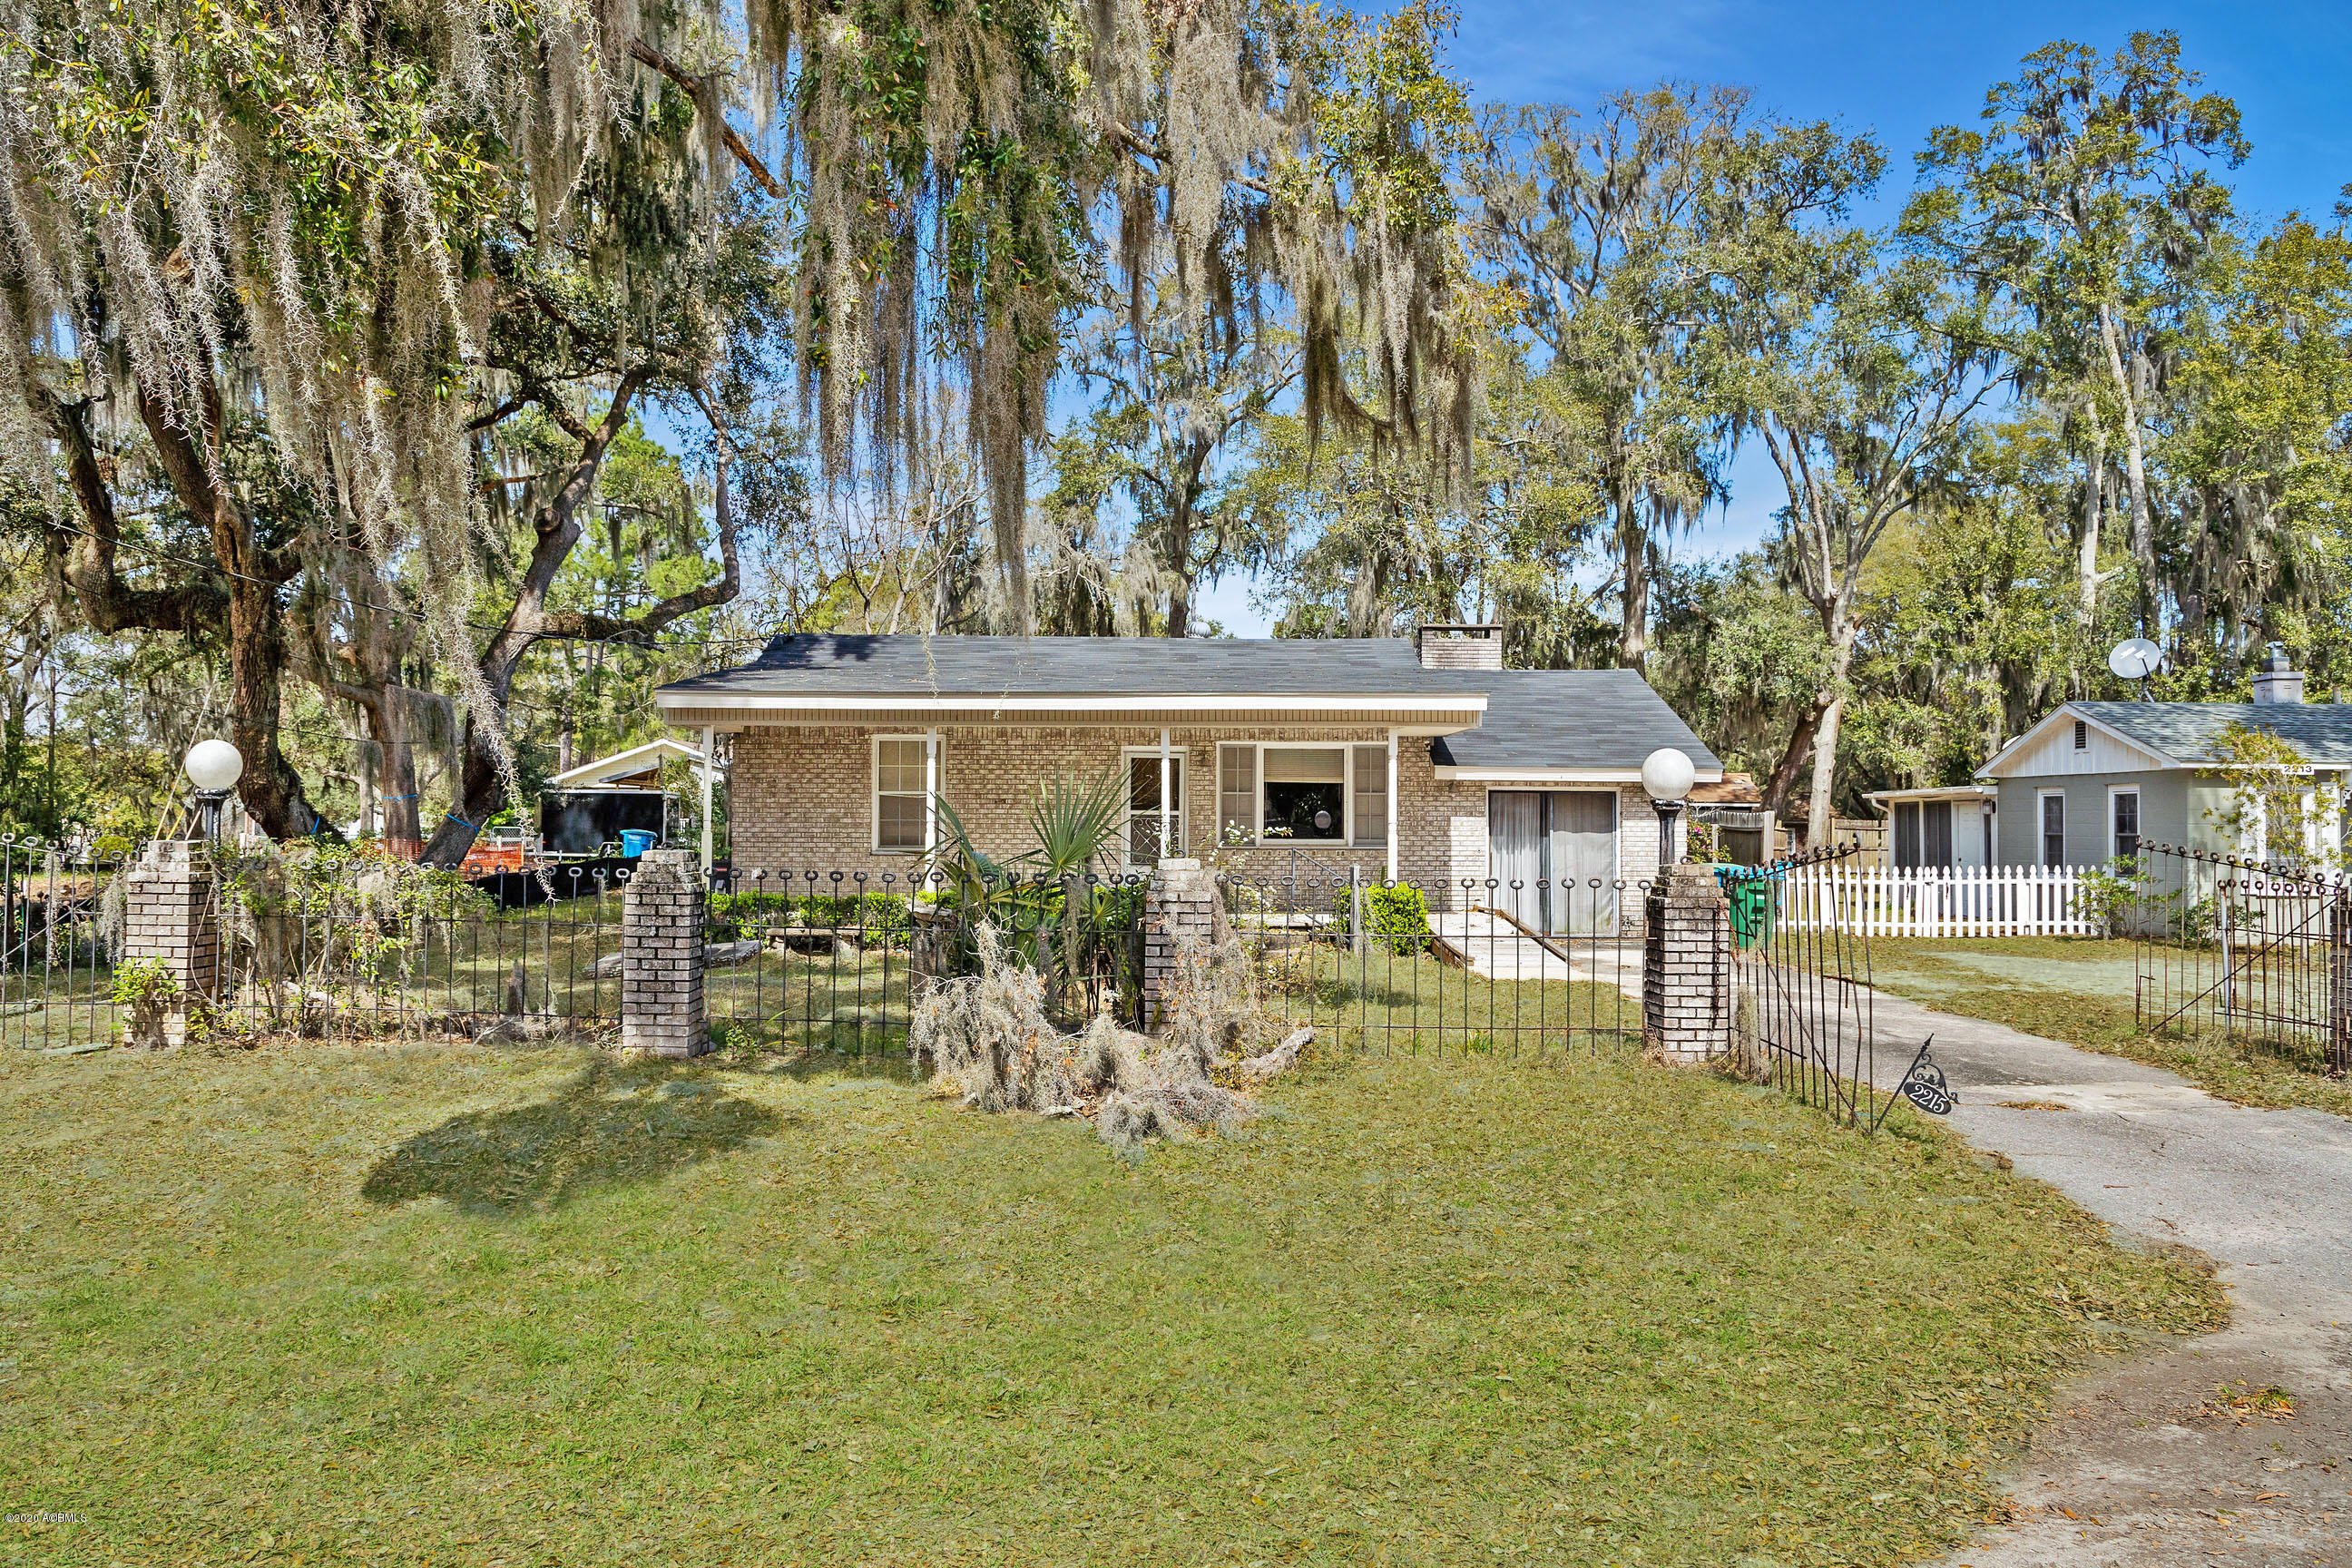 Photo of 2215 National Street, Beaufort, SC 29902